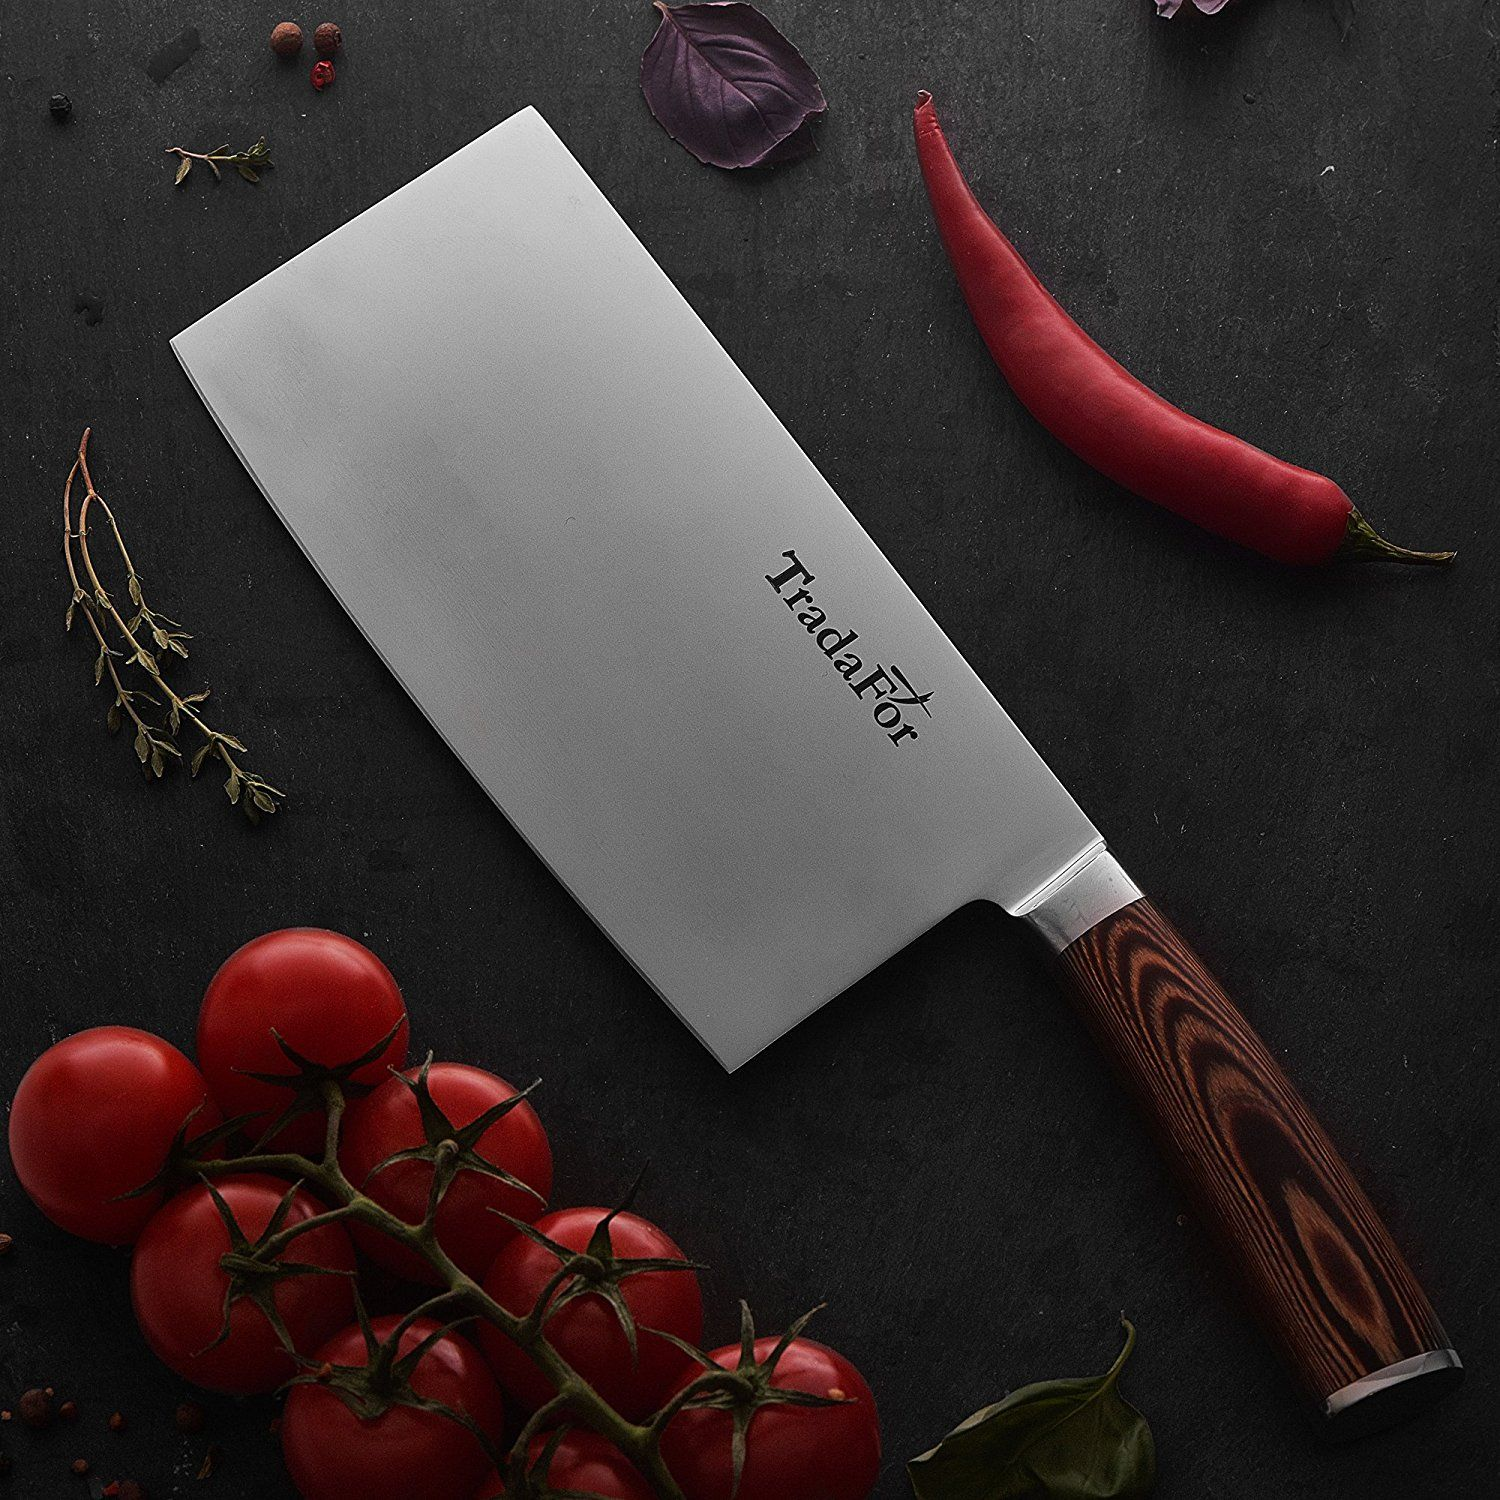 Amazon meat cleaver 25 off 72 inch chef chinese knife amazon meat cleaver 25 off 72 inch chef chinese knife kitchen cutlerykitchen diningchoppermeatheadsvegetablesknivesstainless steelchinese publicscrutiny Image collections